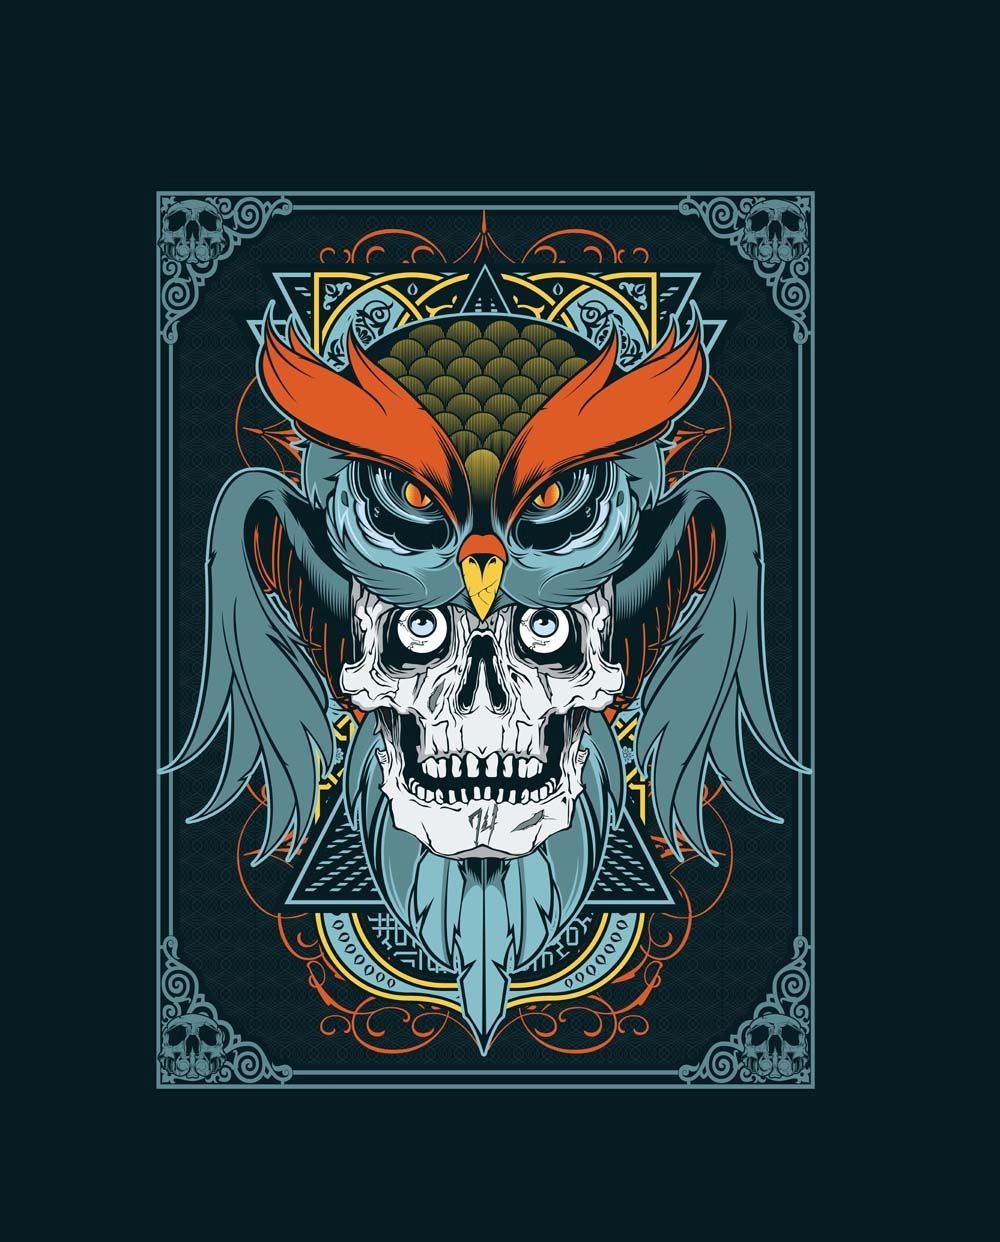 Design t shirt adobe illustrator tutorial - Adobe Illustrator Photoshop Tutorial T Shirt Design In Illustrator Using Owl And Skull